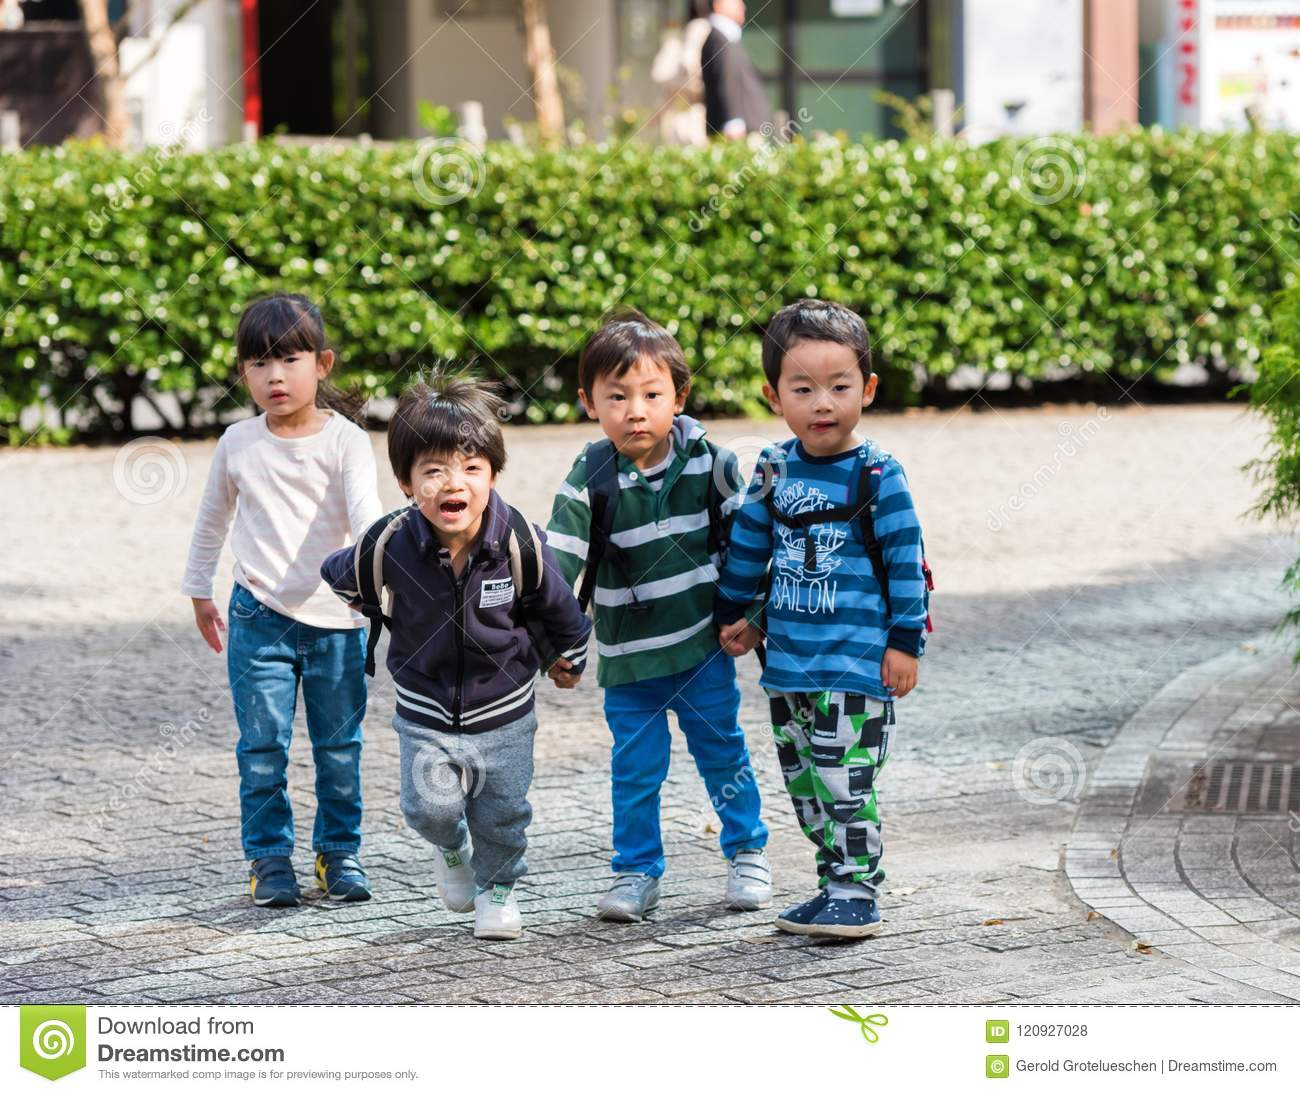 TOKYO, JAPAN - NOVEMBER 7, 2017: Four children in a city park. Copy space for text.